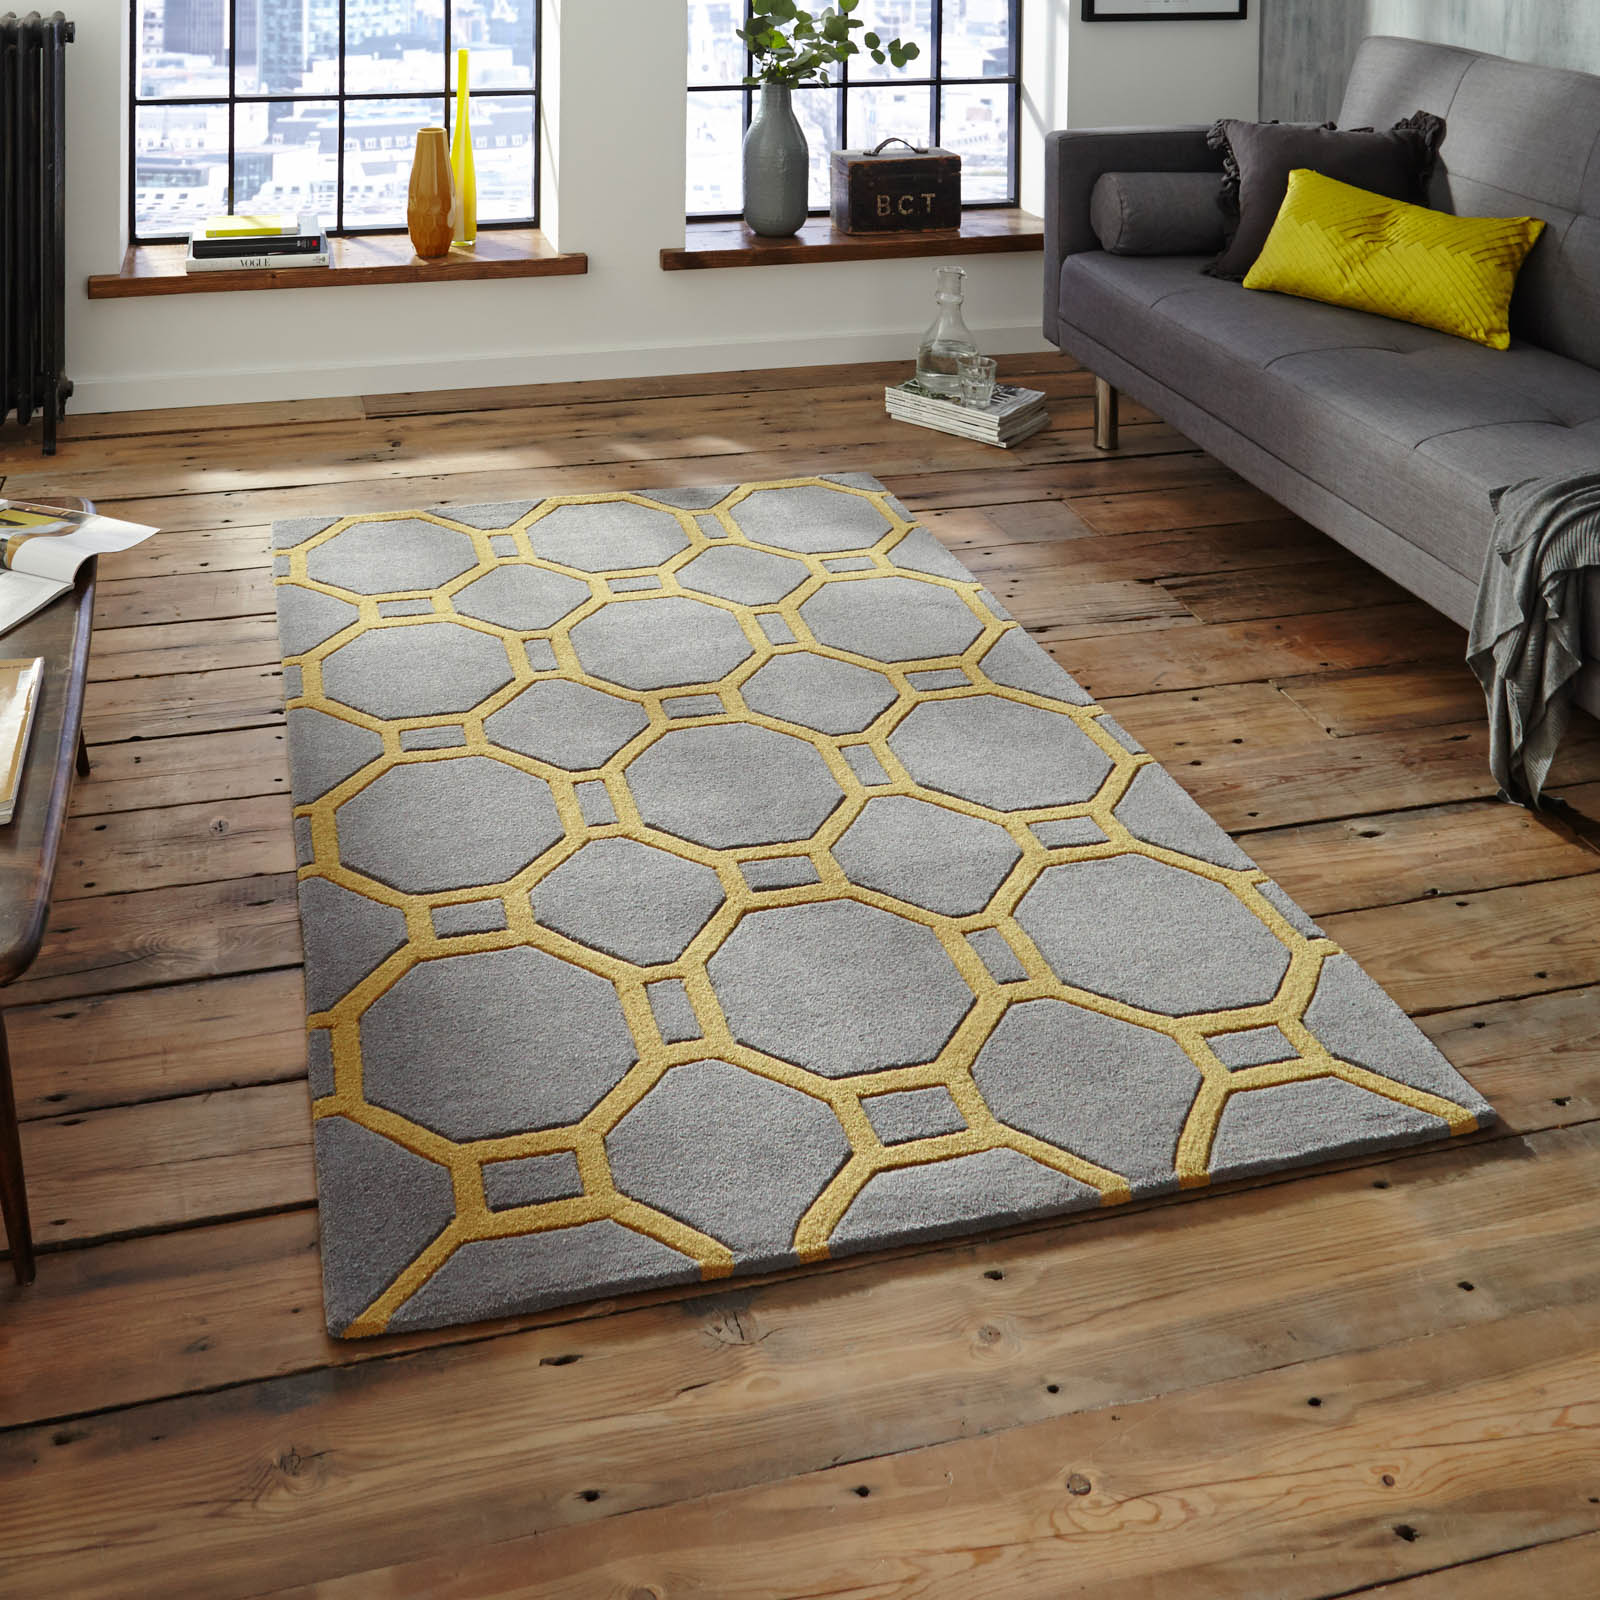 Hong Kong Hk 4338 Rugs In Grey Yellow Free Uk Delivery